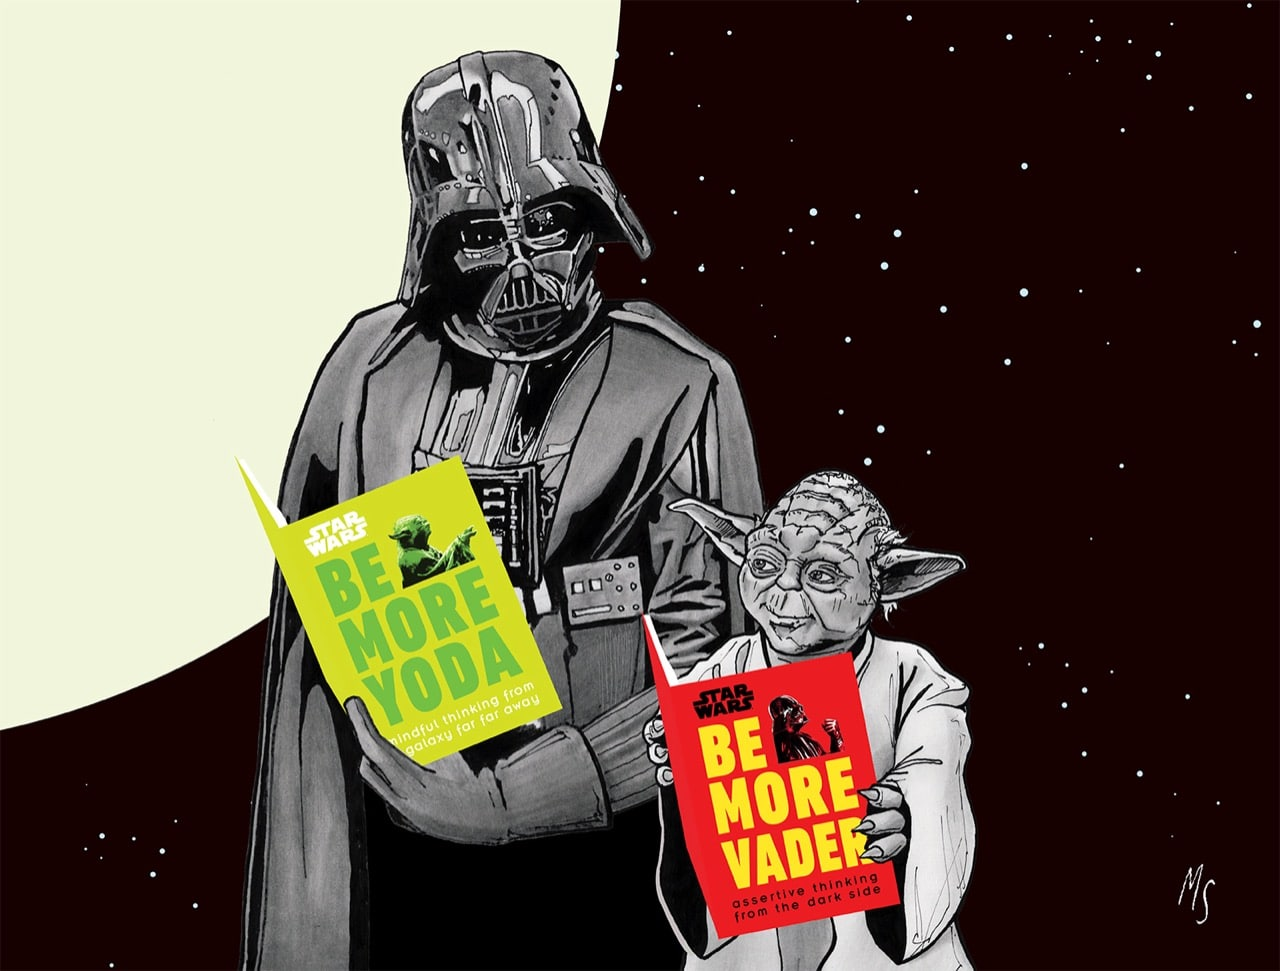 Be More Yoda and Be More Vader